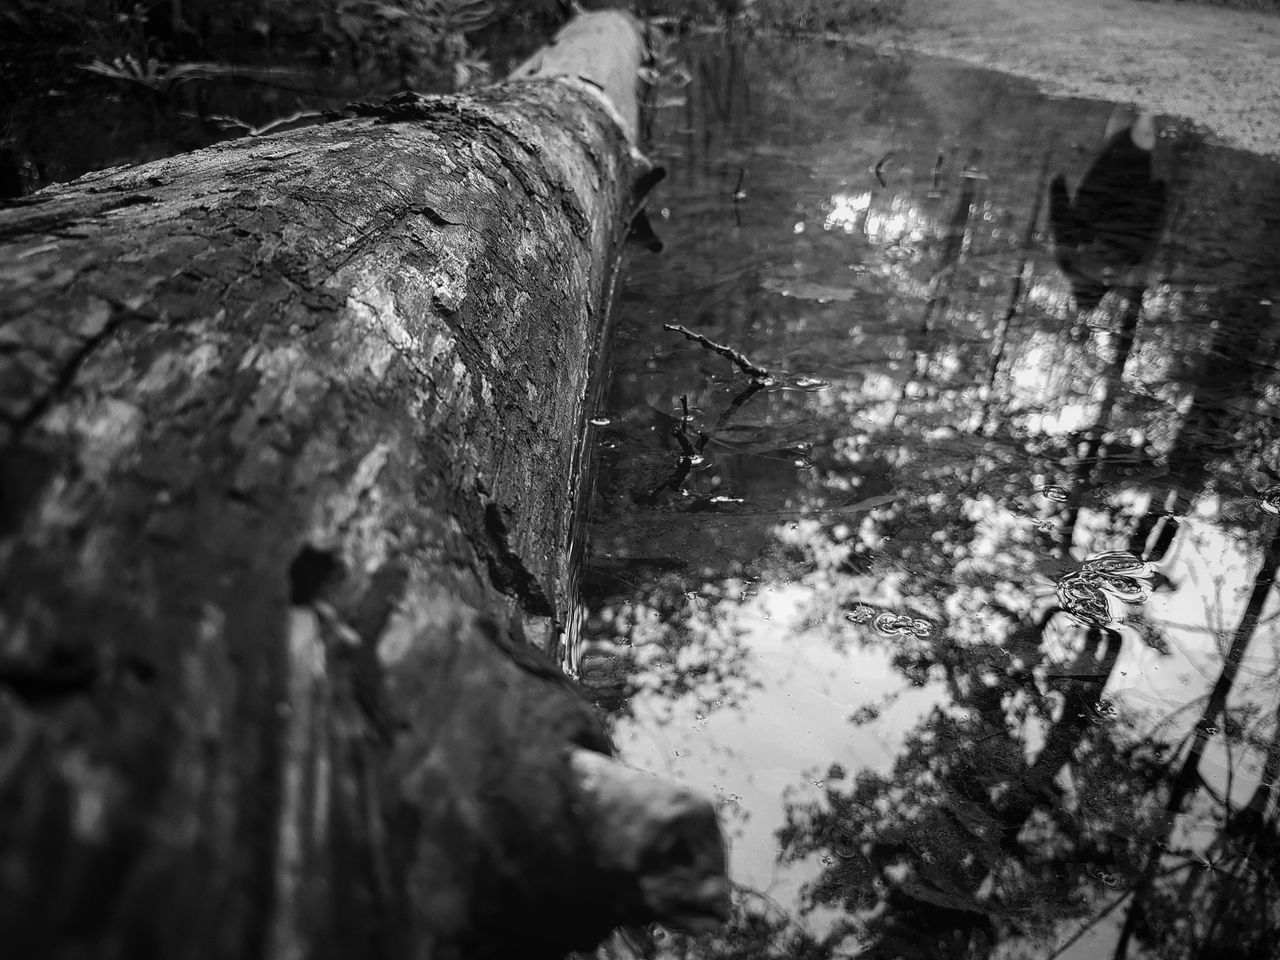 Choose your own path Outdoors Nature Reflection Blackandwhite